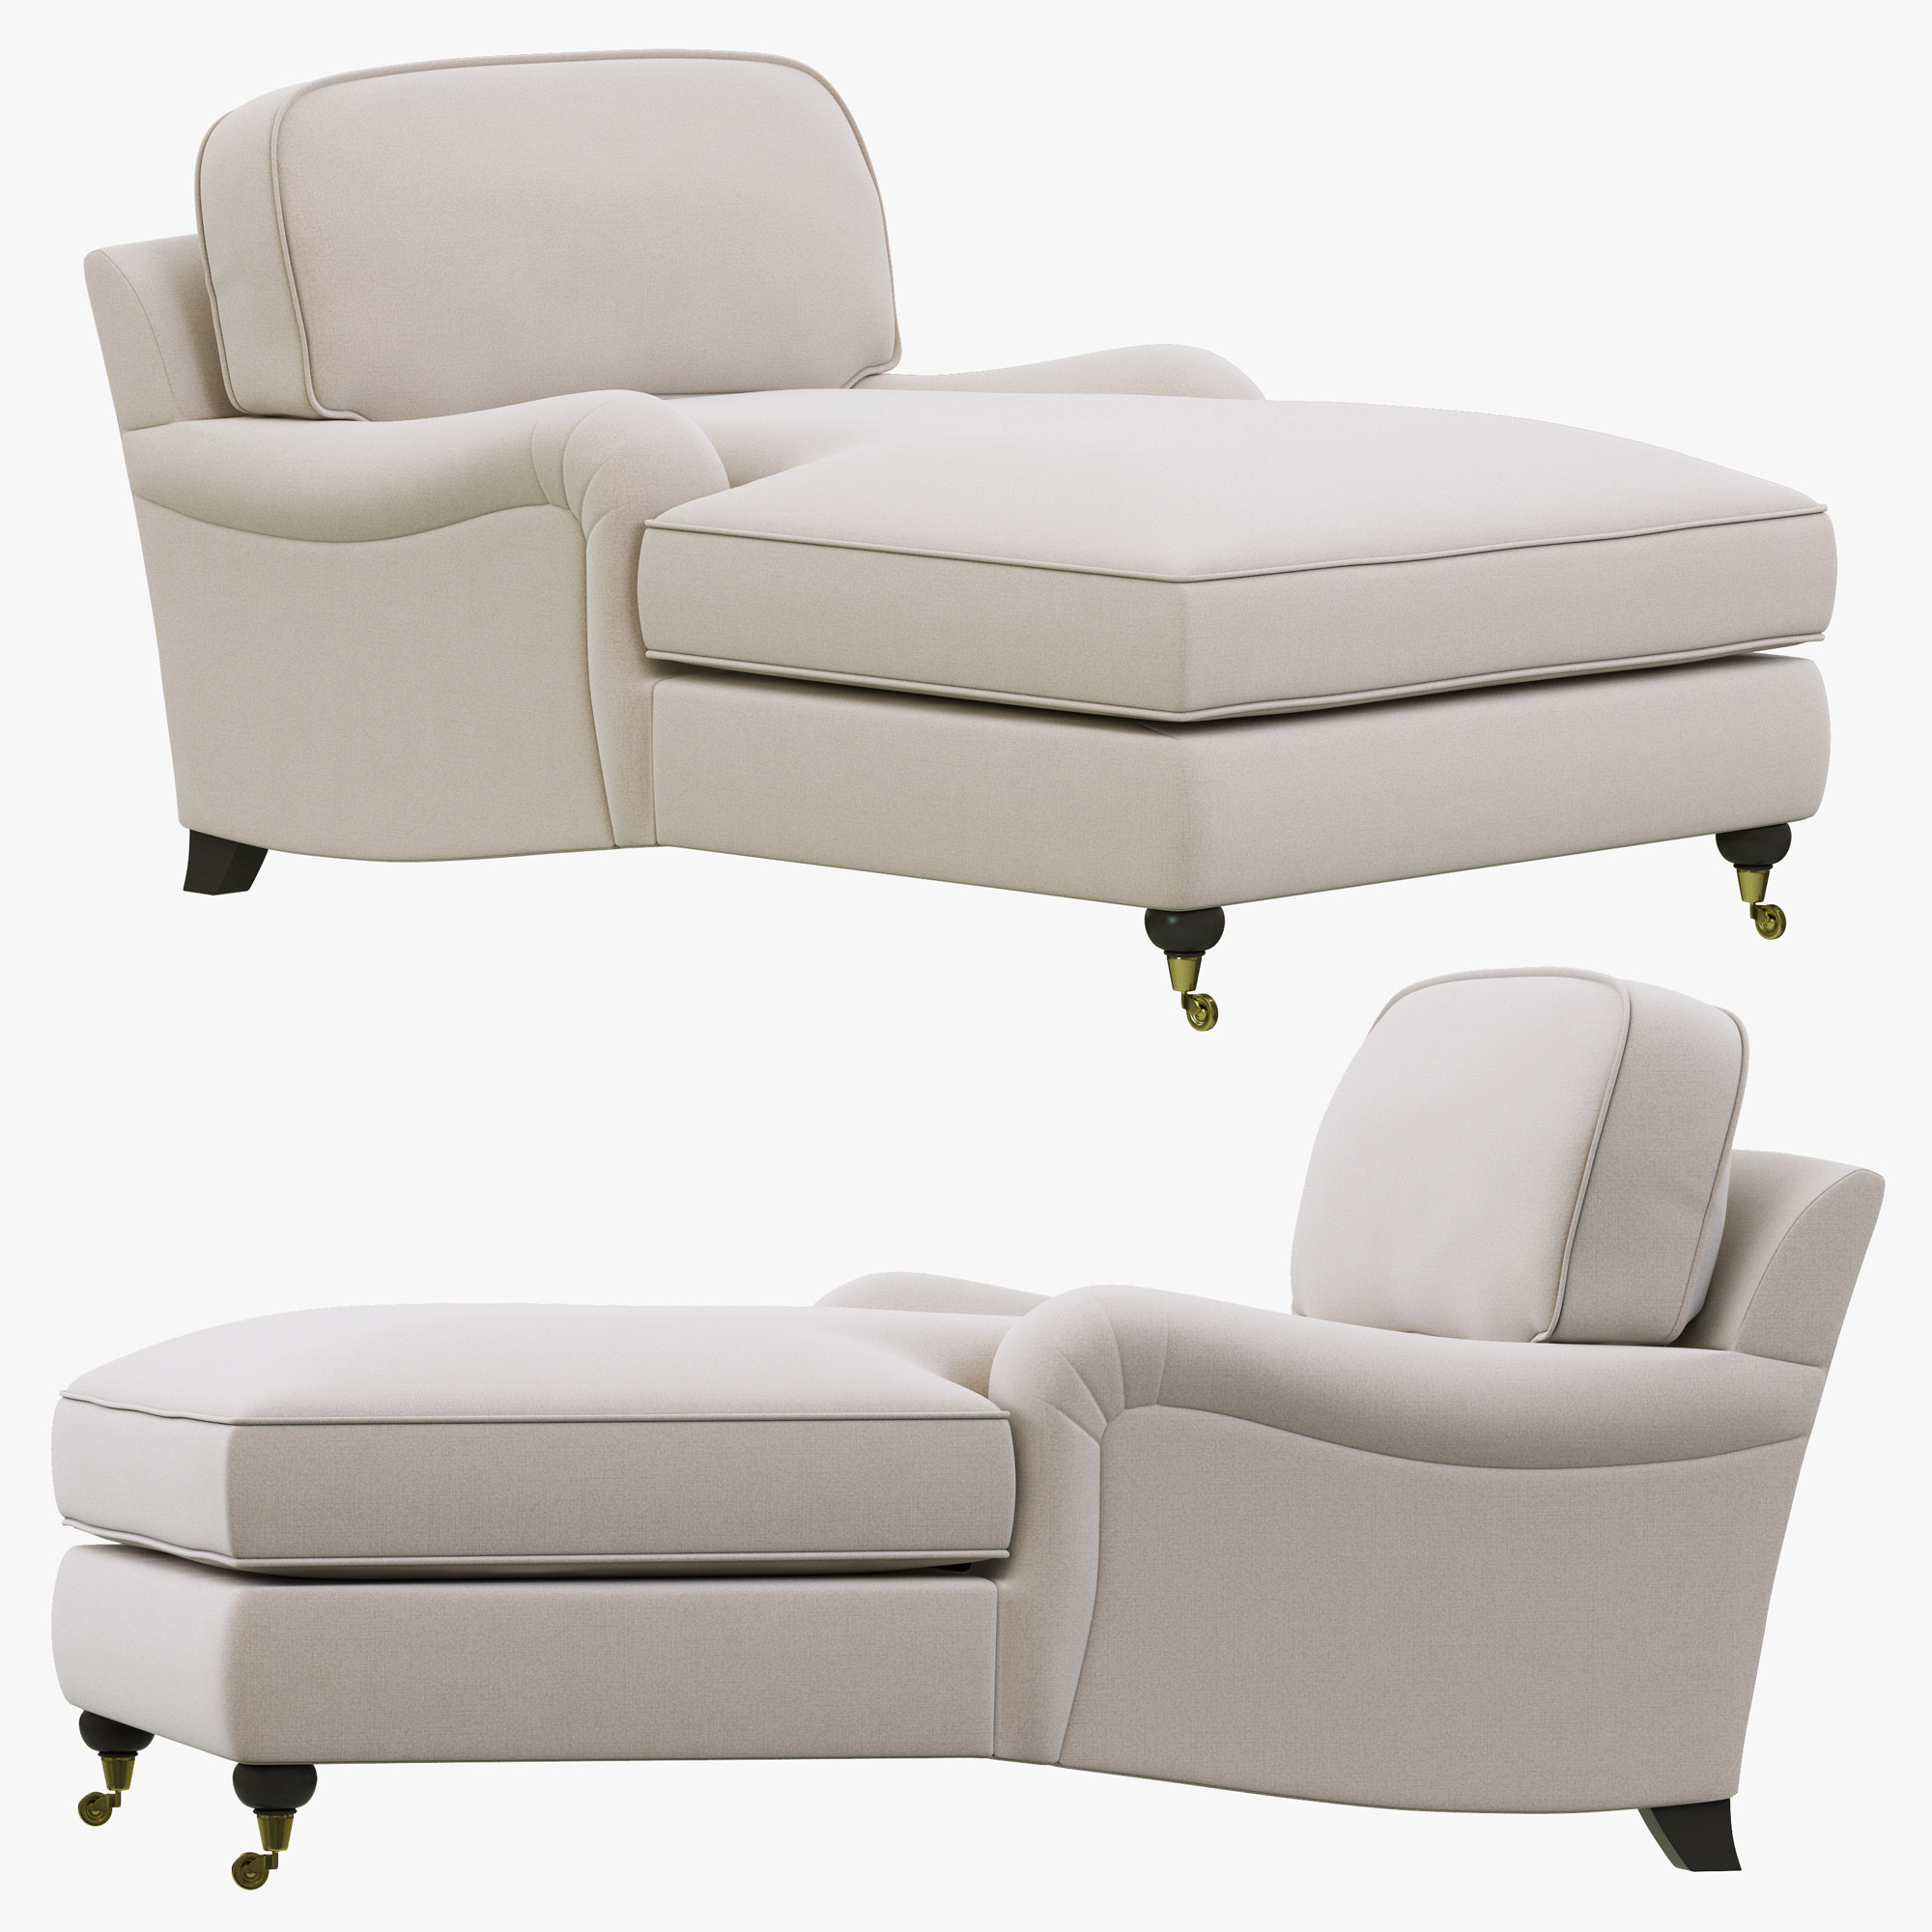 rolled arm sofa chaise convertible bed cozy sectional sofas restoration hardware english roll 3d model